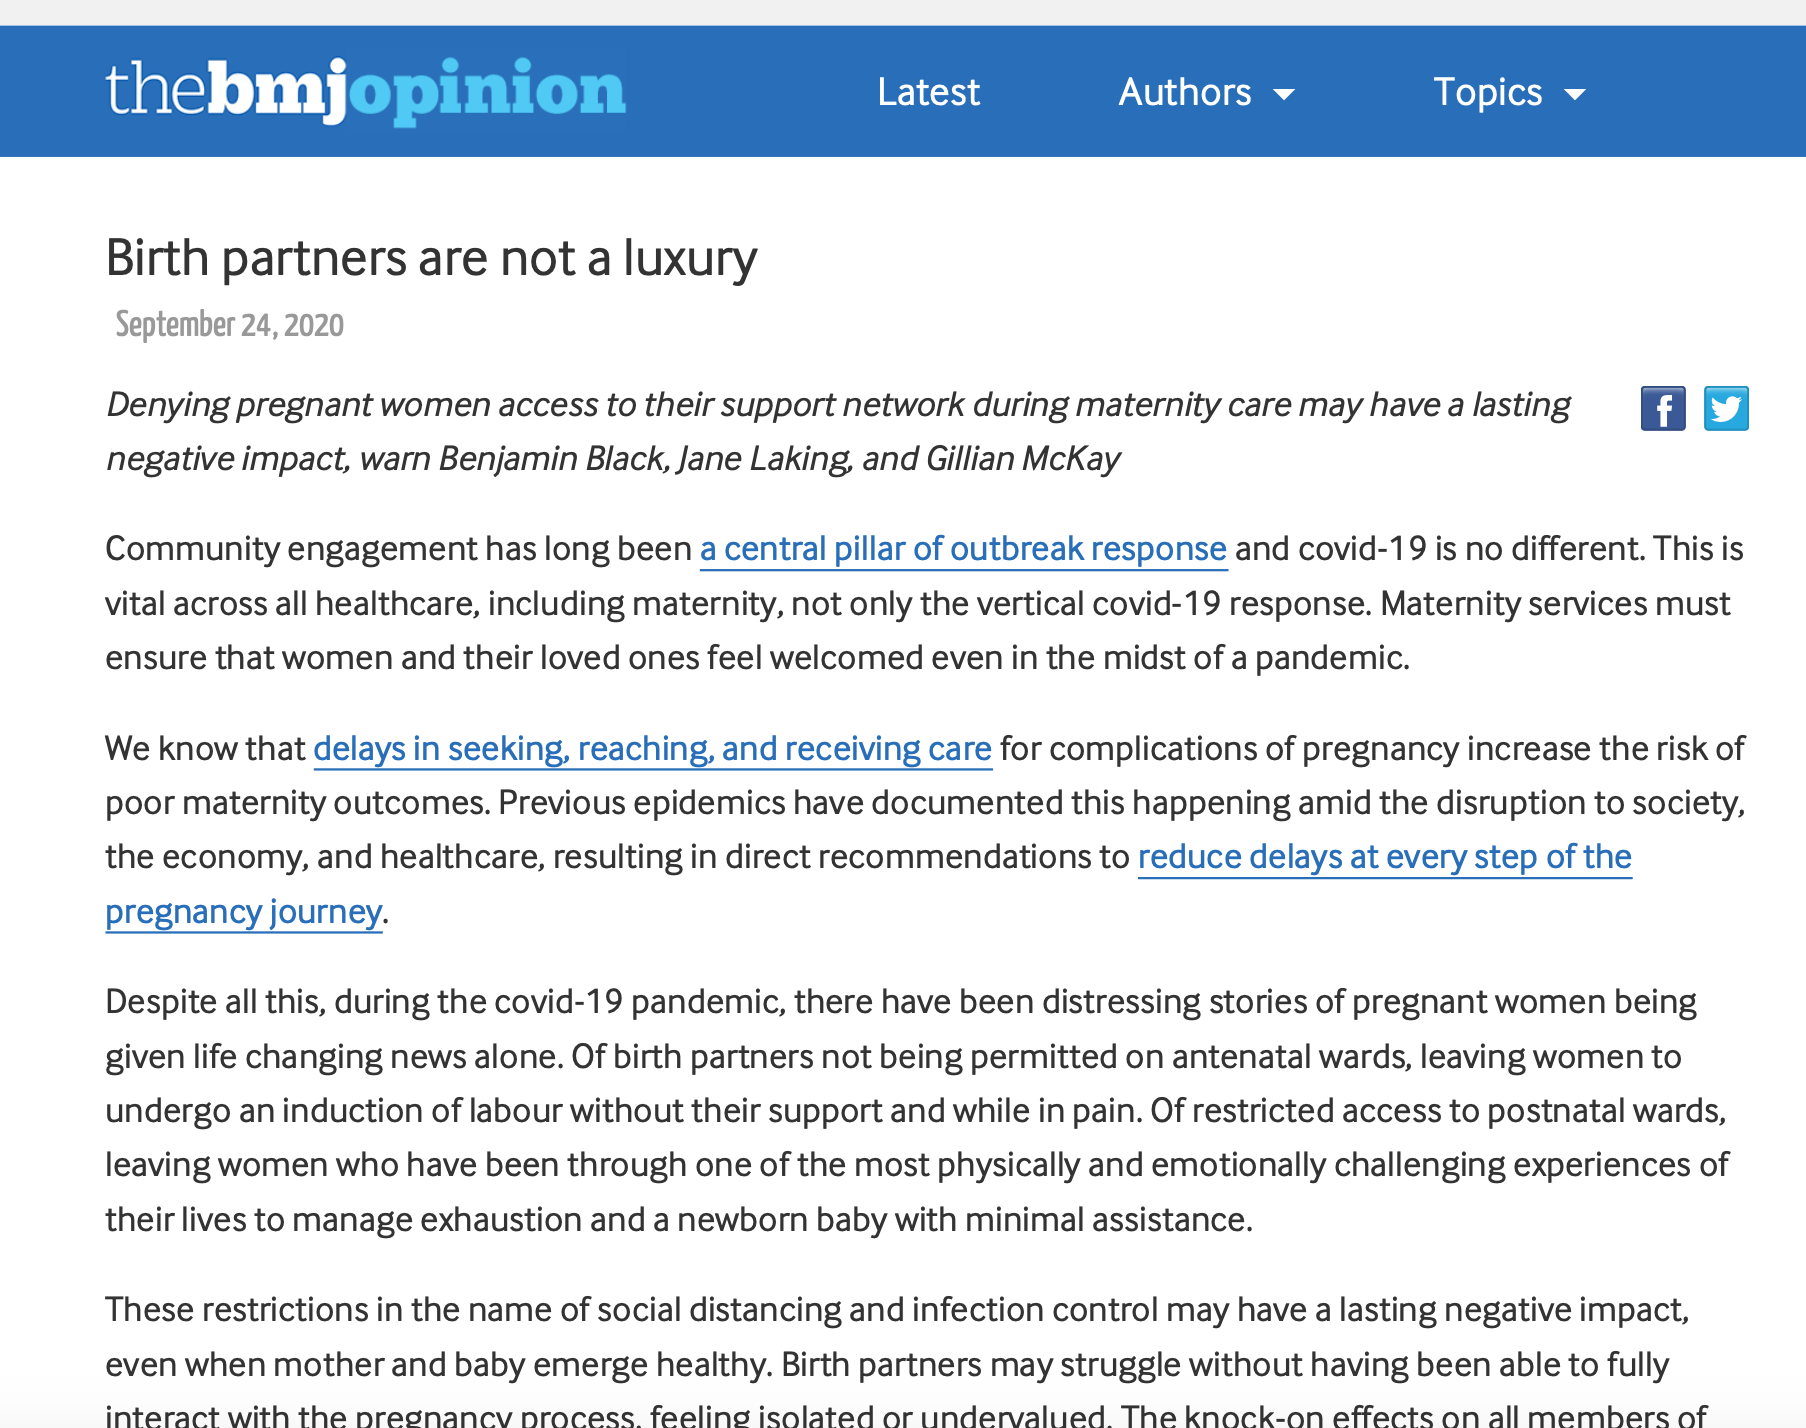 Birth partners are not a luxury